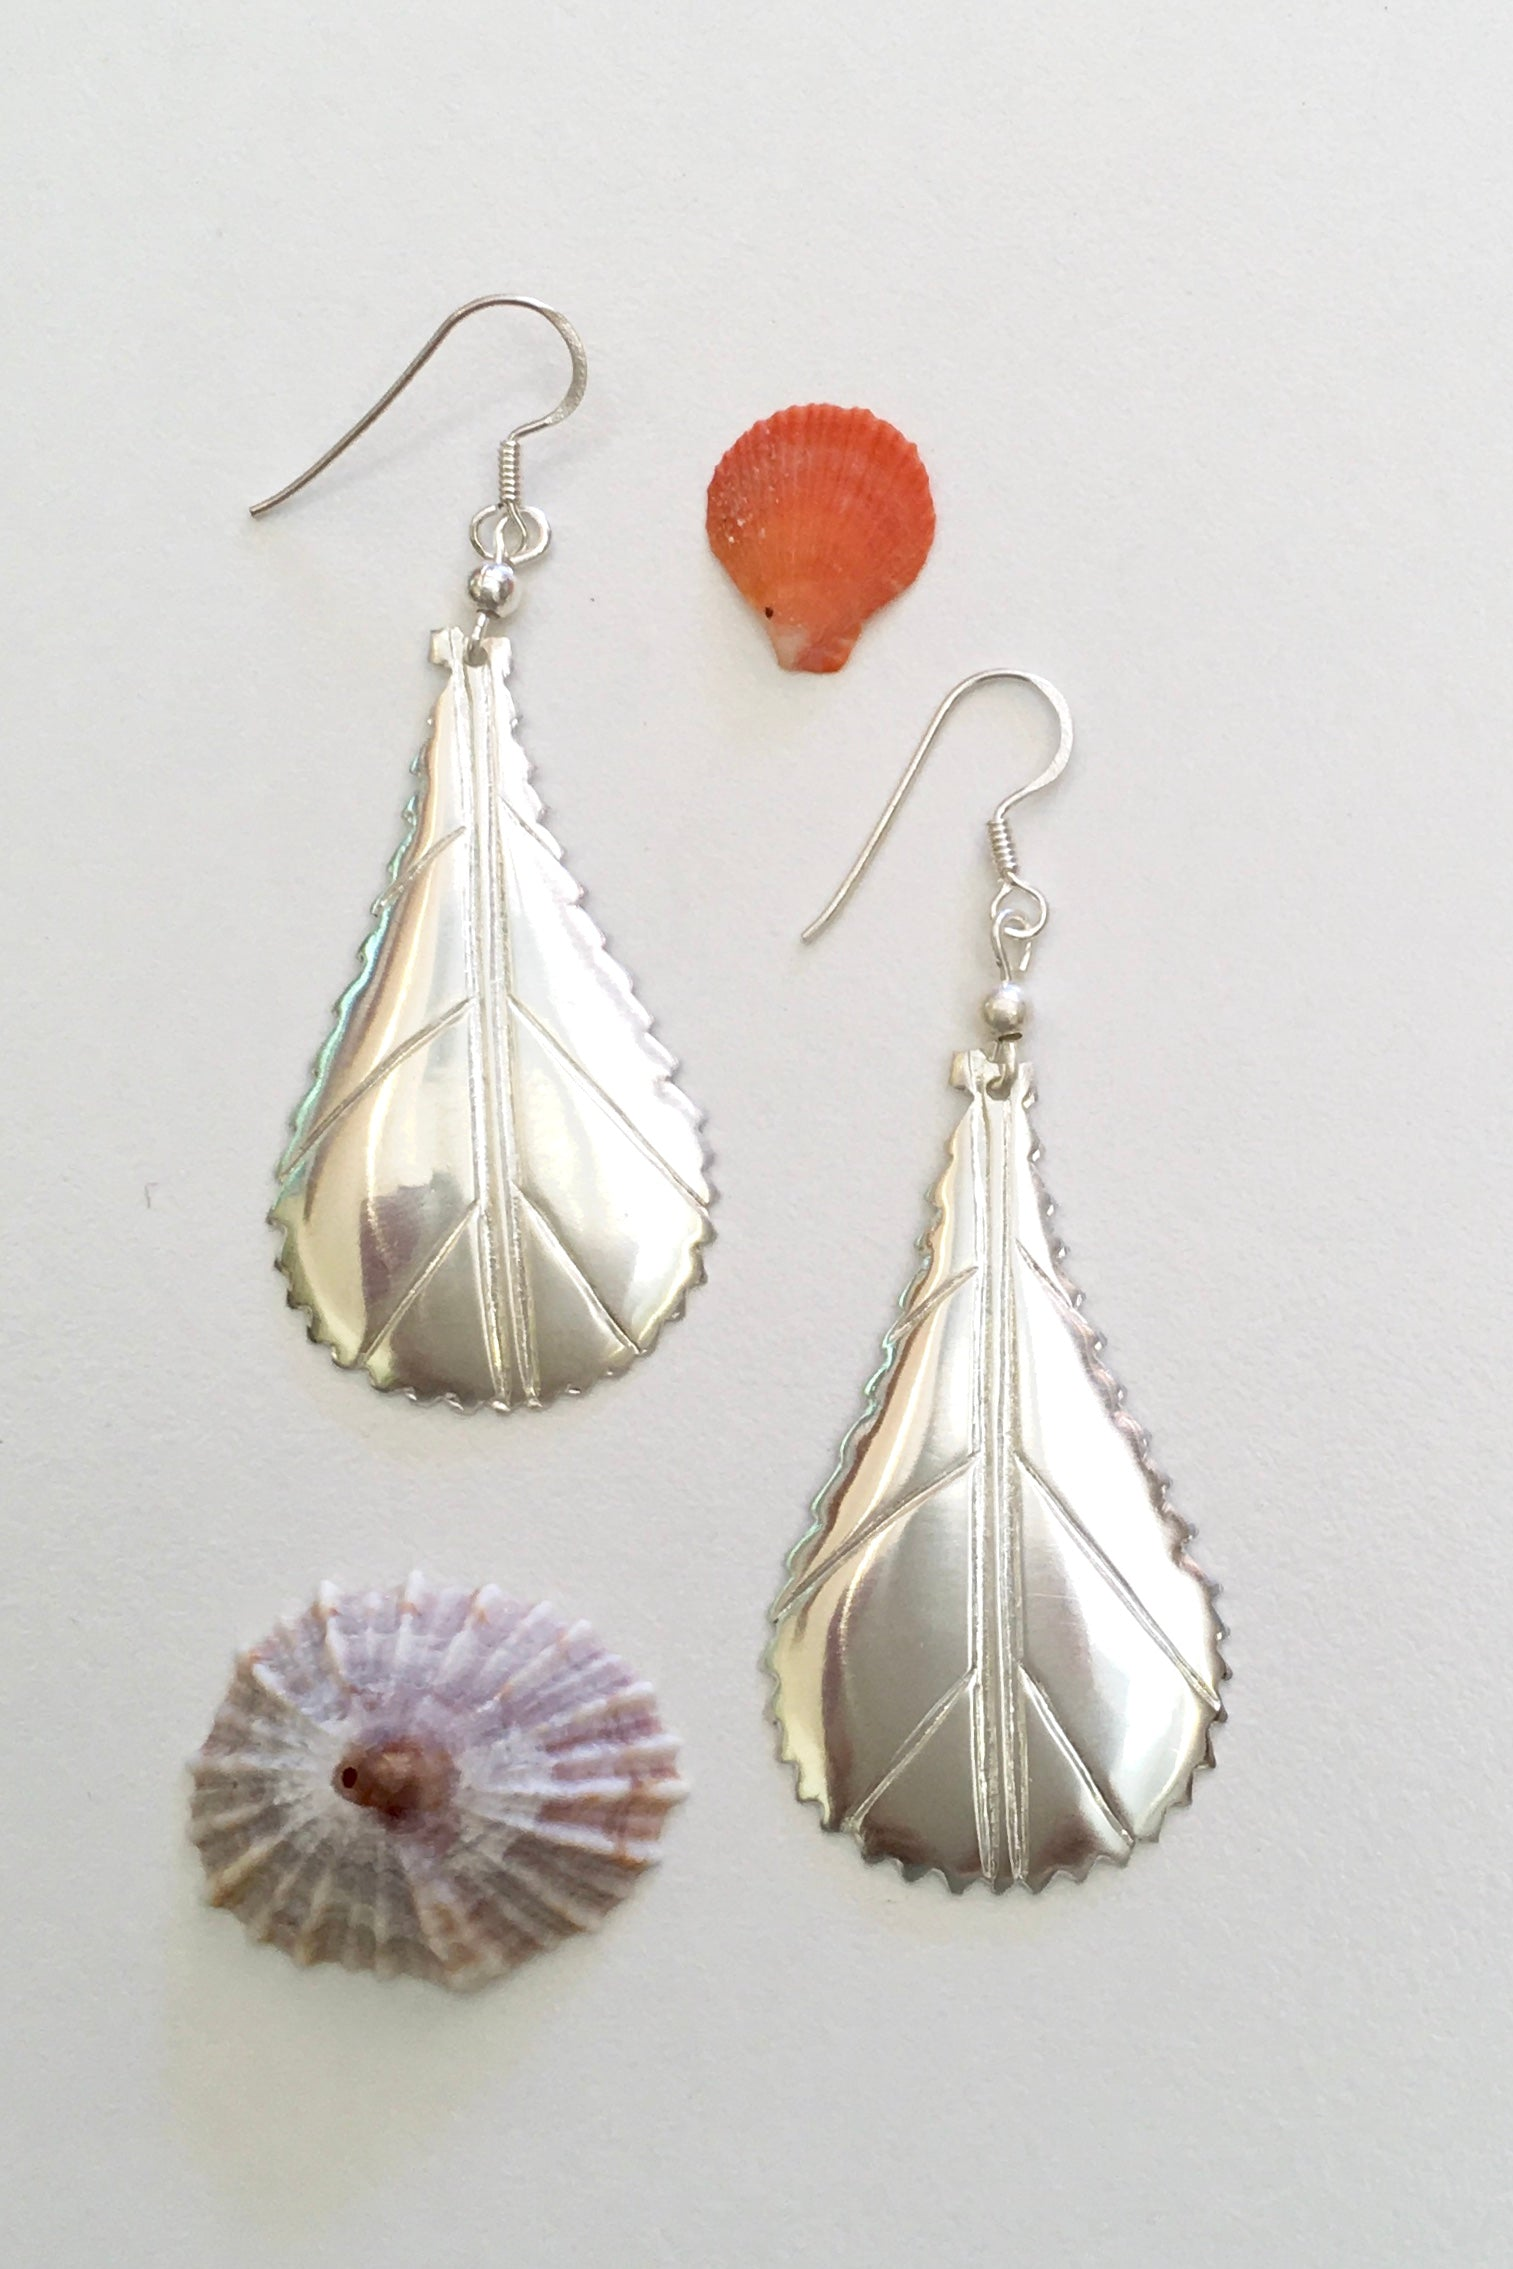 Silver Leaf Earrings, 952 Silver Earrings in a leaf shape